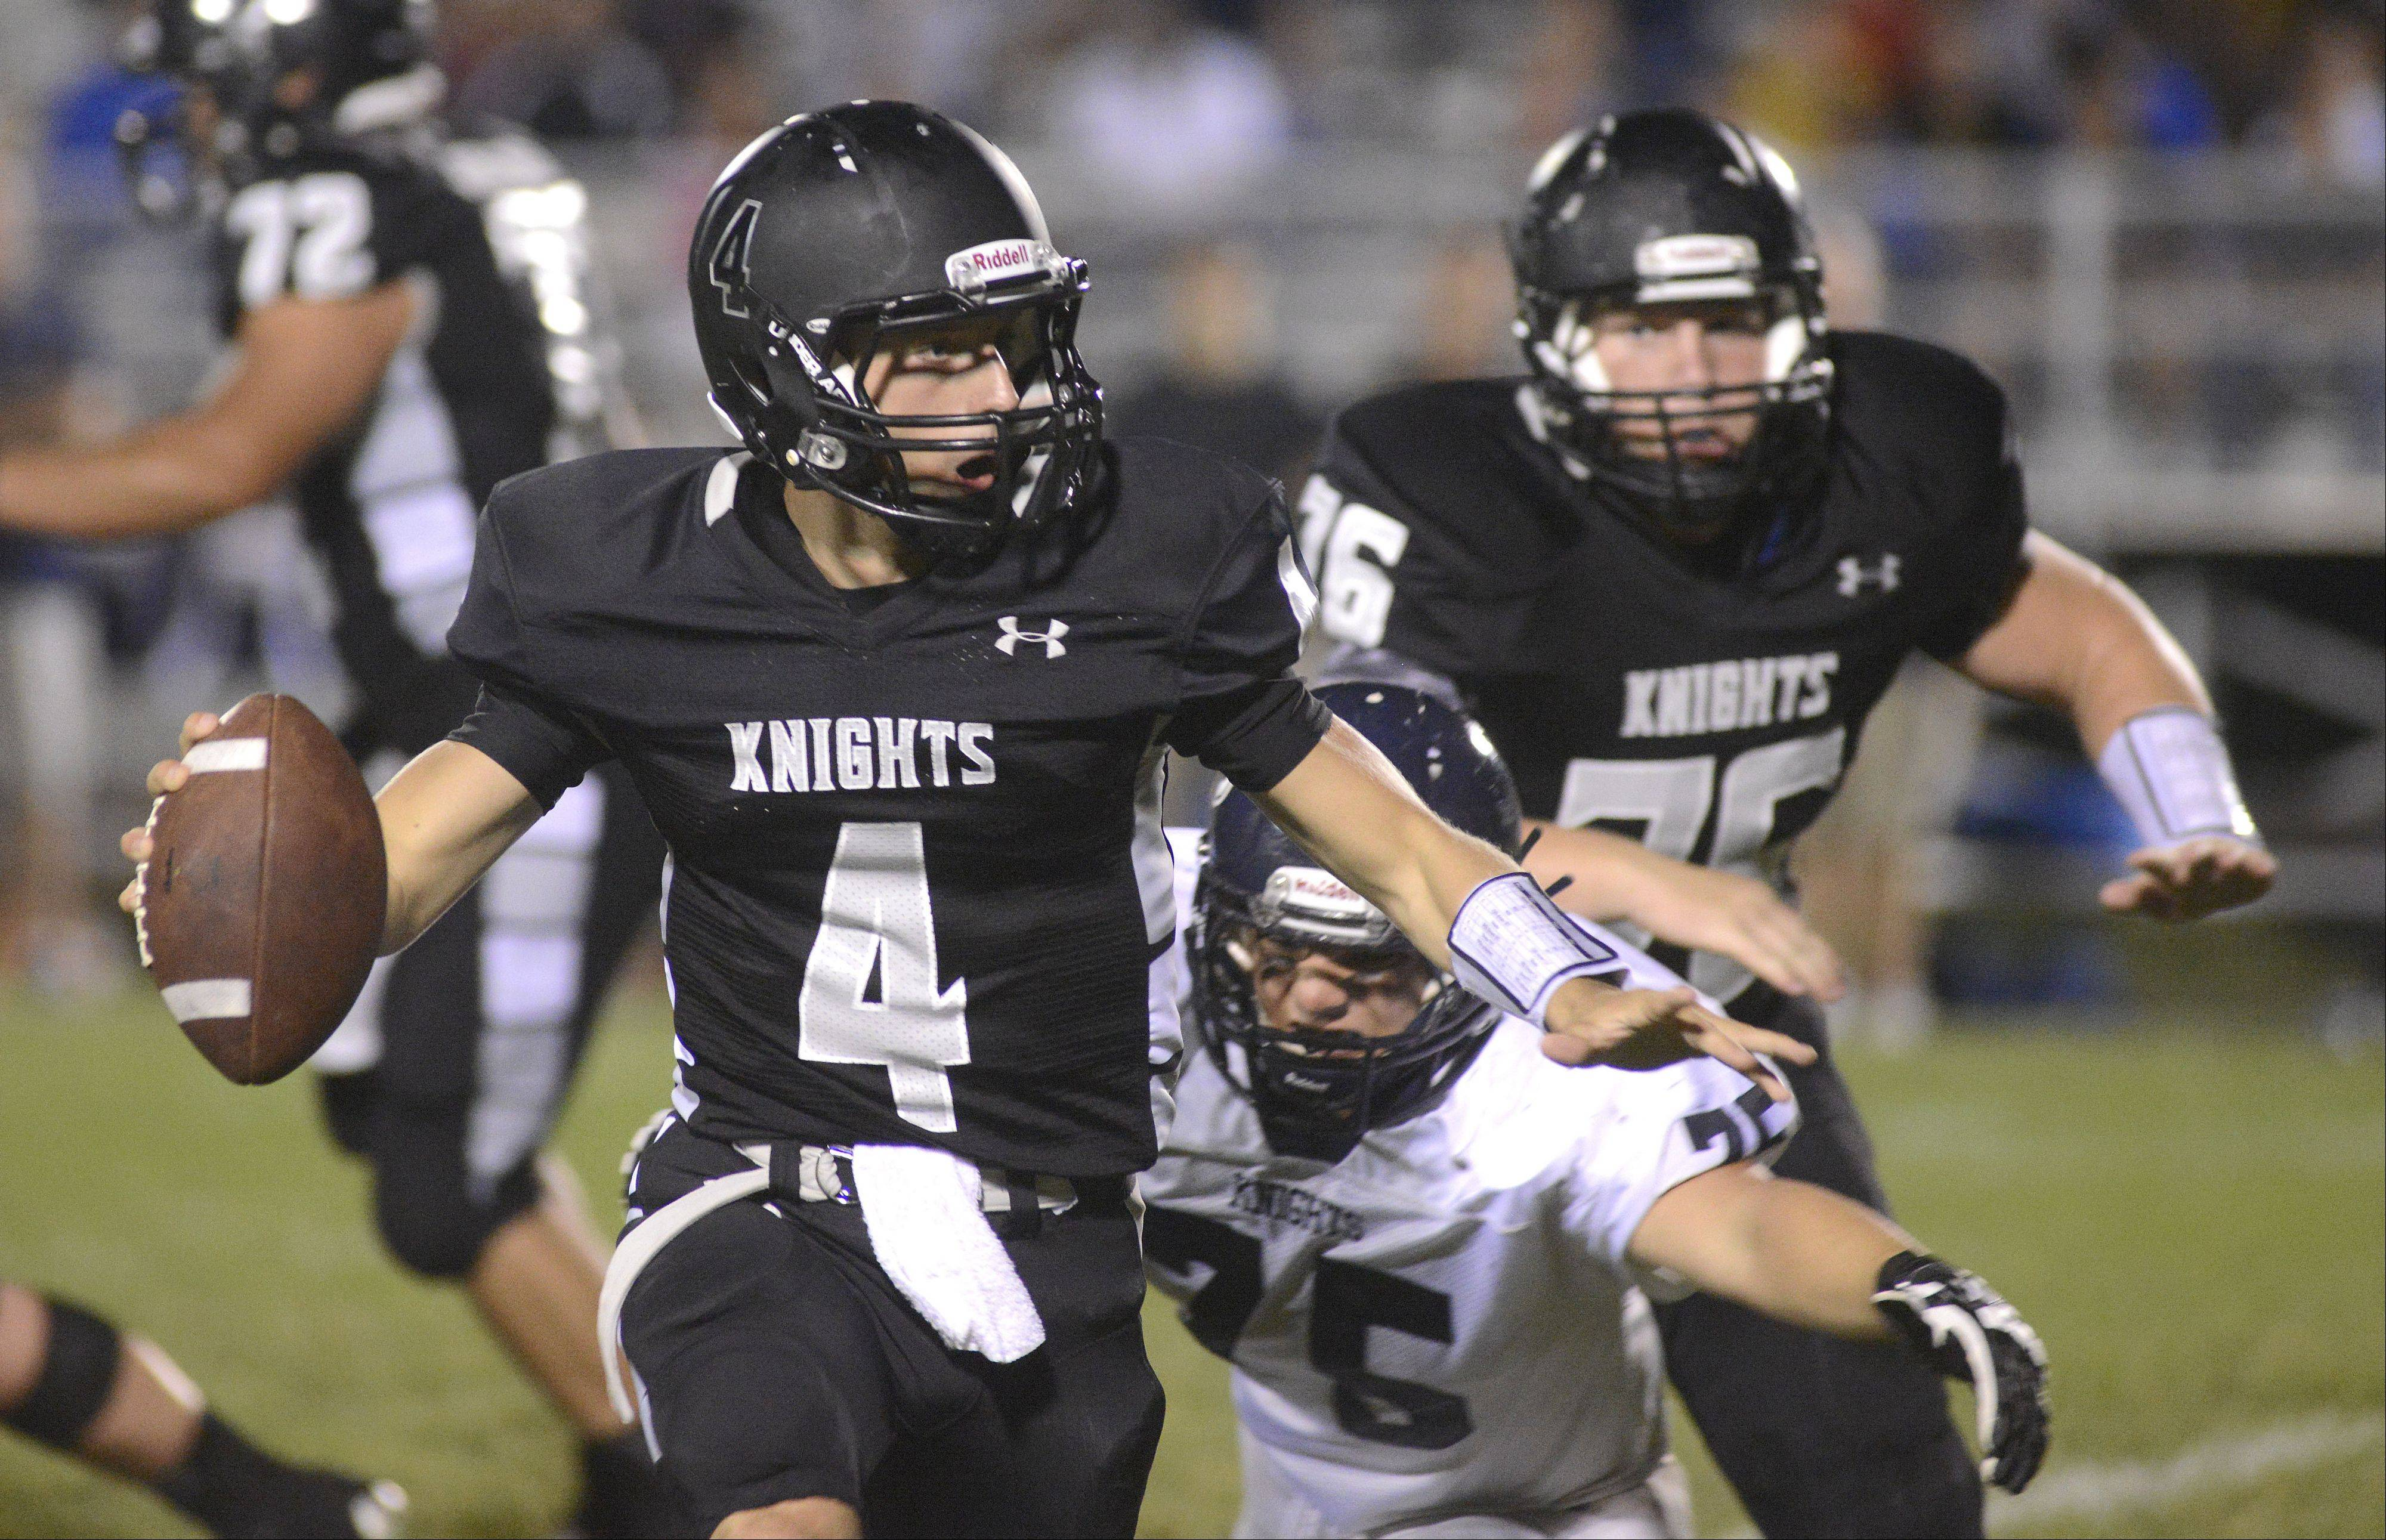 Kaneland quarterback Drew David looks to pass the ball before being sacked by IC Catholic Prep's Sam Lytton in the second quarter on Friday, September 6.